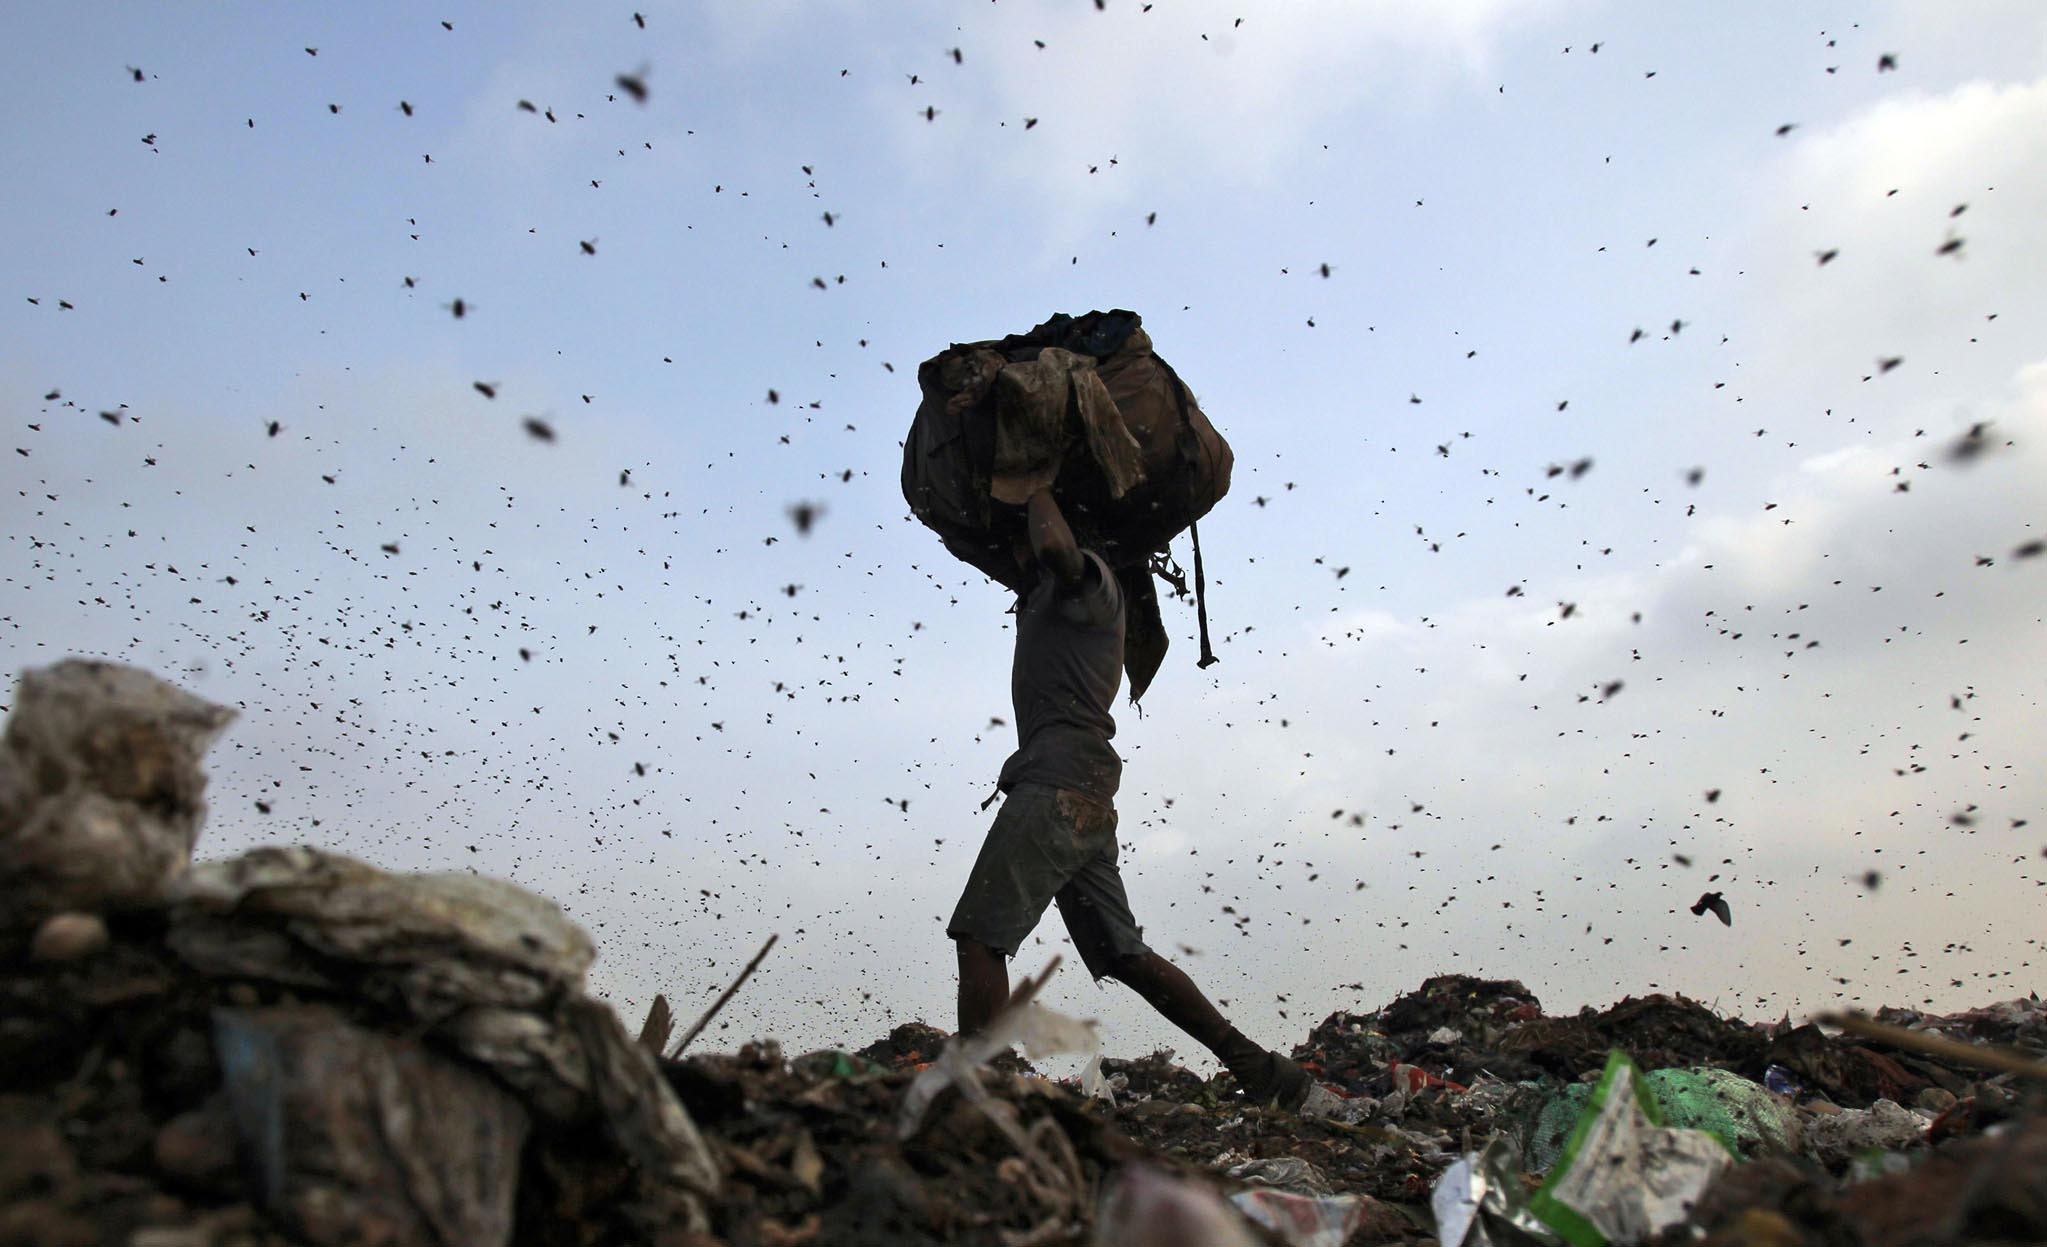 Insects and birds fly in a dump yard as a waste collector collects scraps in New Delhi June 27, 2013. Credit: Reuters/Anindito Mukherjee